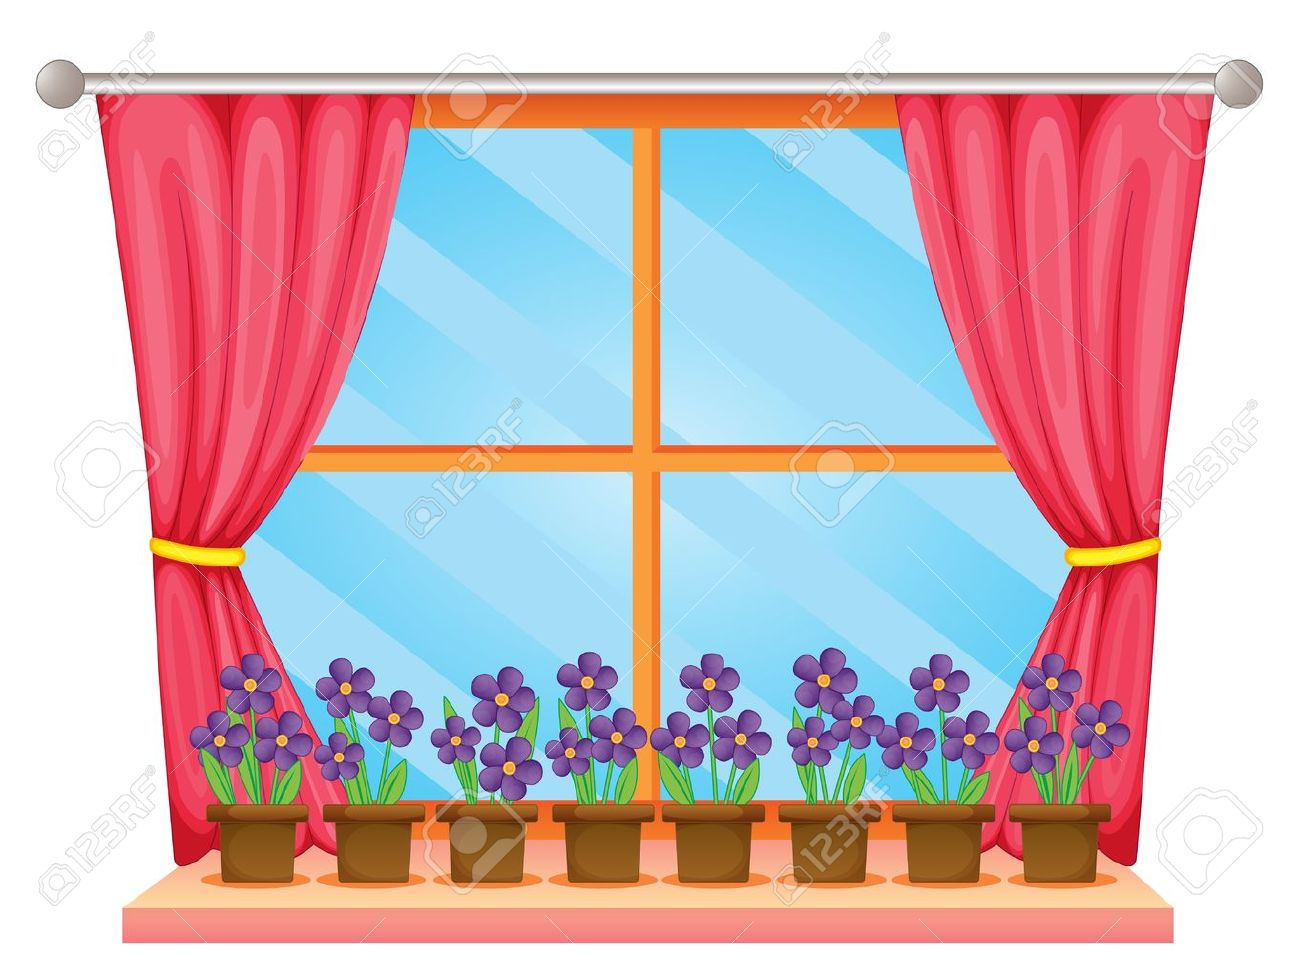 window with curtains clipart 5 | Clipart Station for Window With Curtains Clipart  51ane